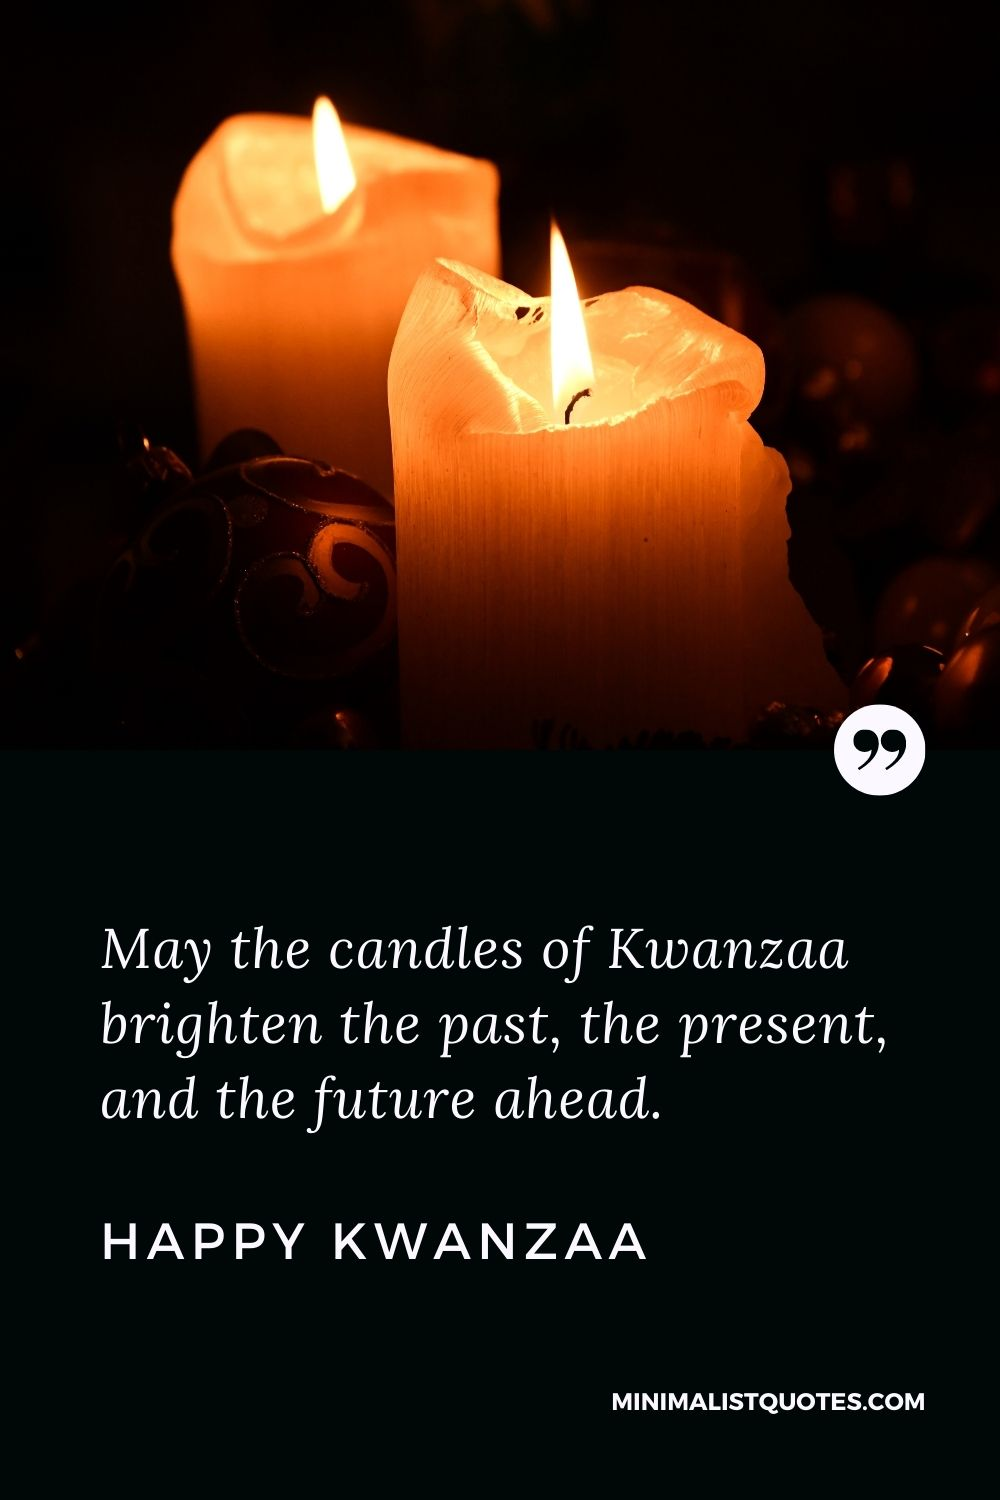 Kwanzaa Quote, Wish & Message With Image: May the candles of Kwanzaa brighten the past, the present, and the future ahead. Happy Kwanzaa!